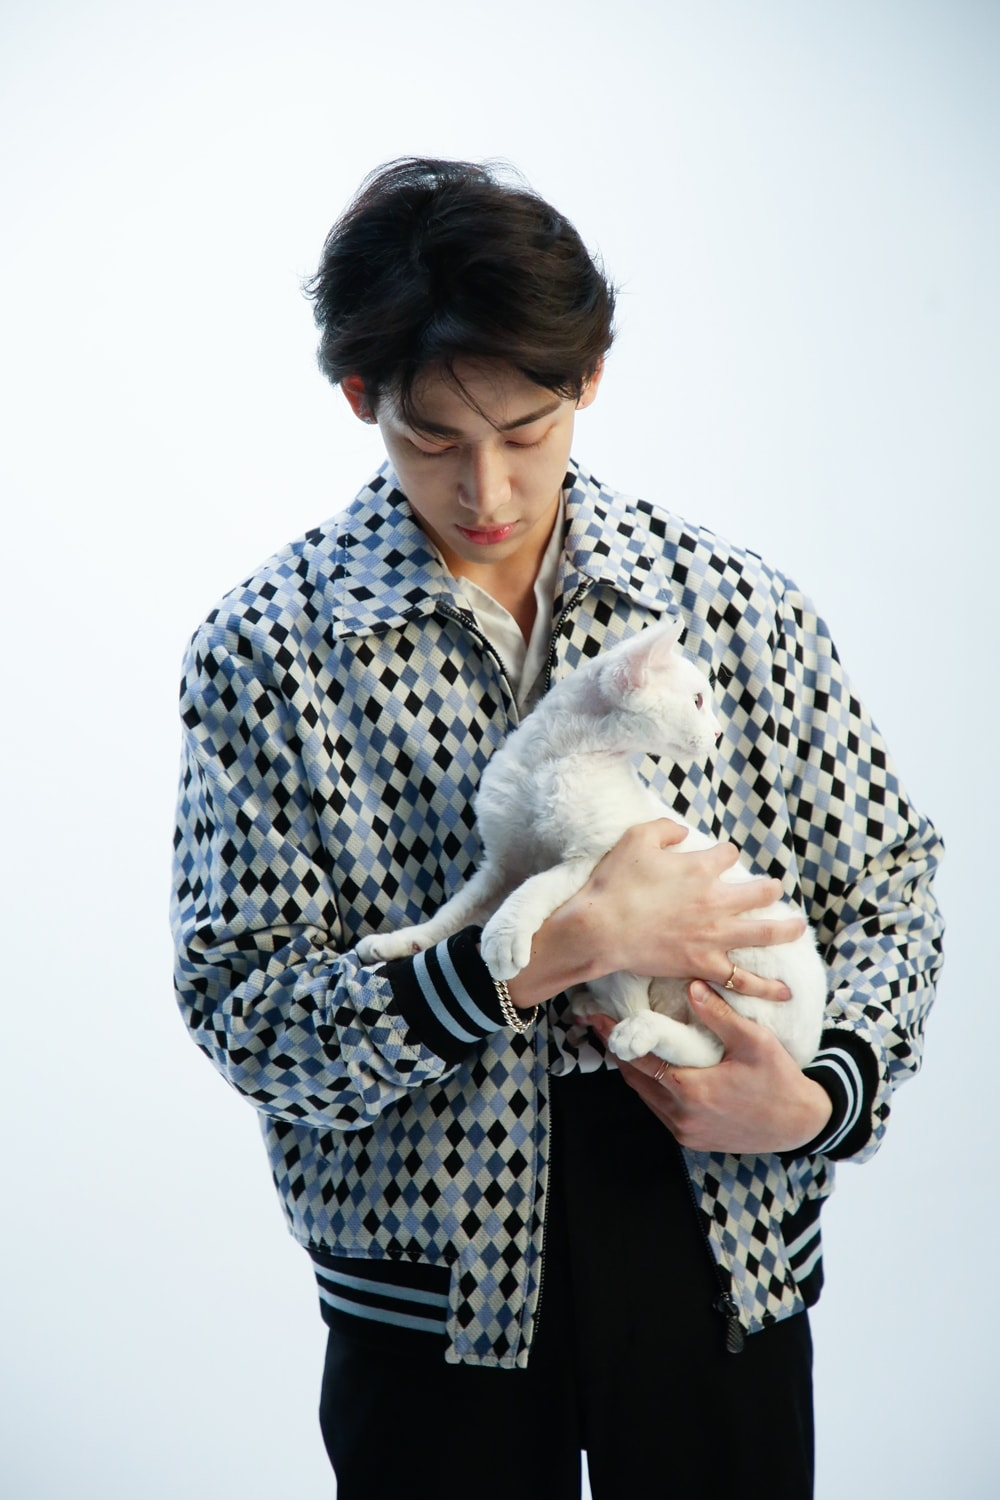 GOT7 BamBam On Behind The Scenes Of Allure Korea Magazine June Issue 2018